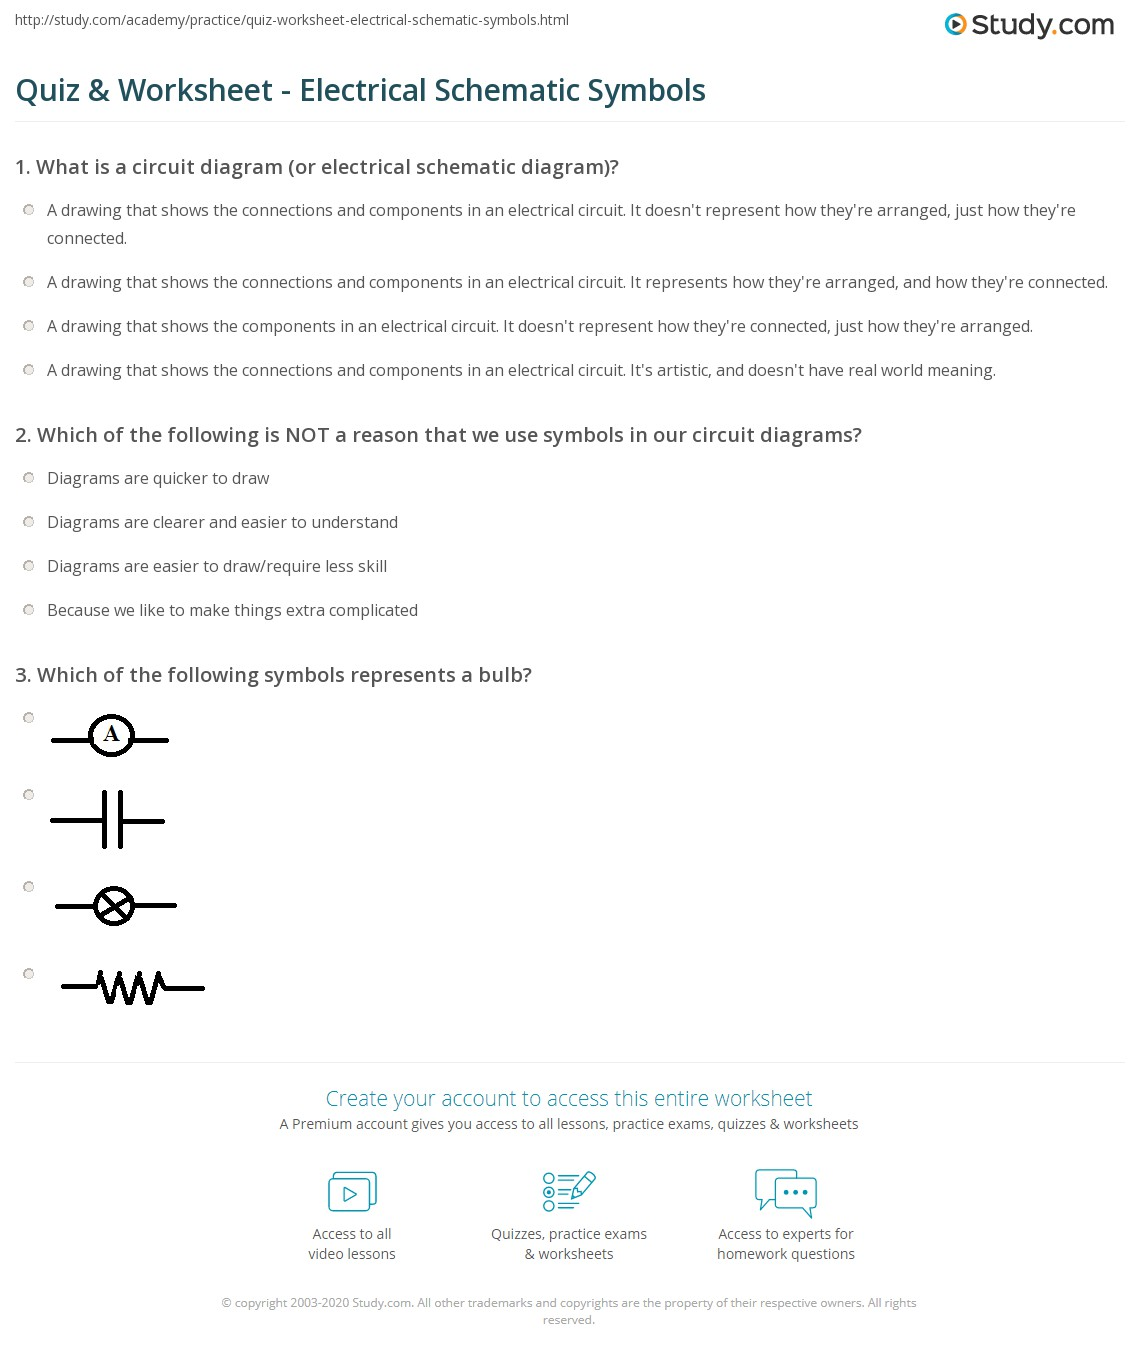 quiz worksheet electrical schematic symbols study com rh study com Electrical Circuit Diagrams Simple Power Supply Circuit Diagram